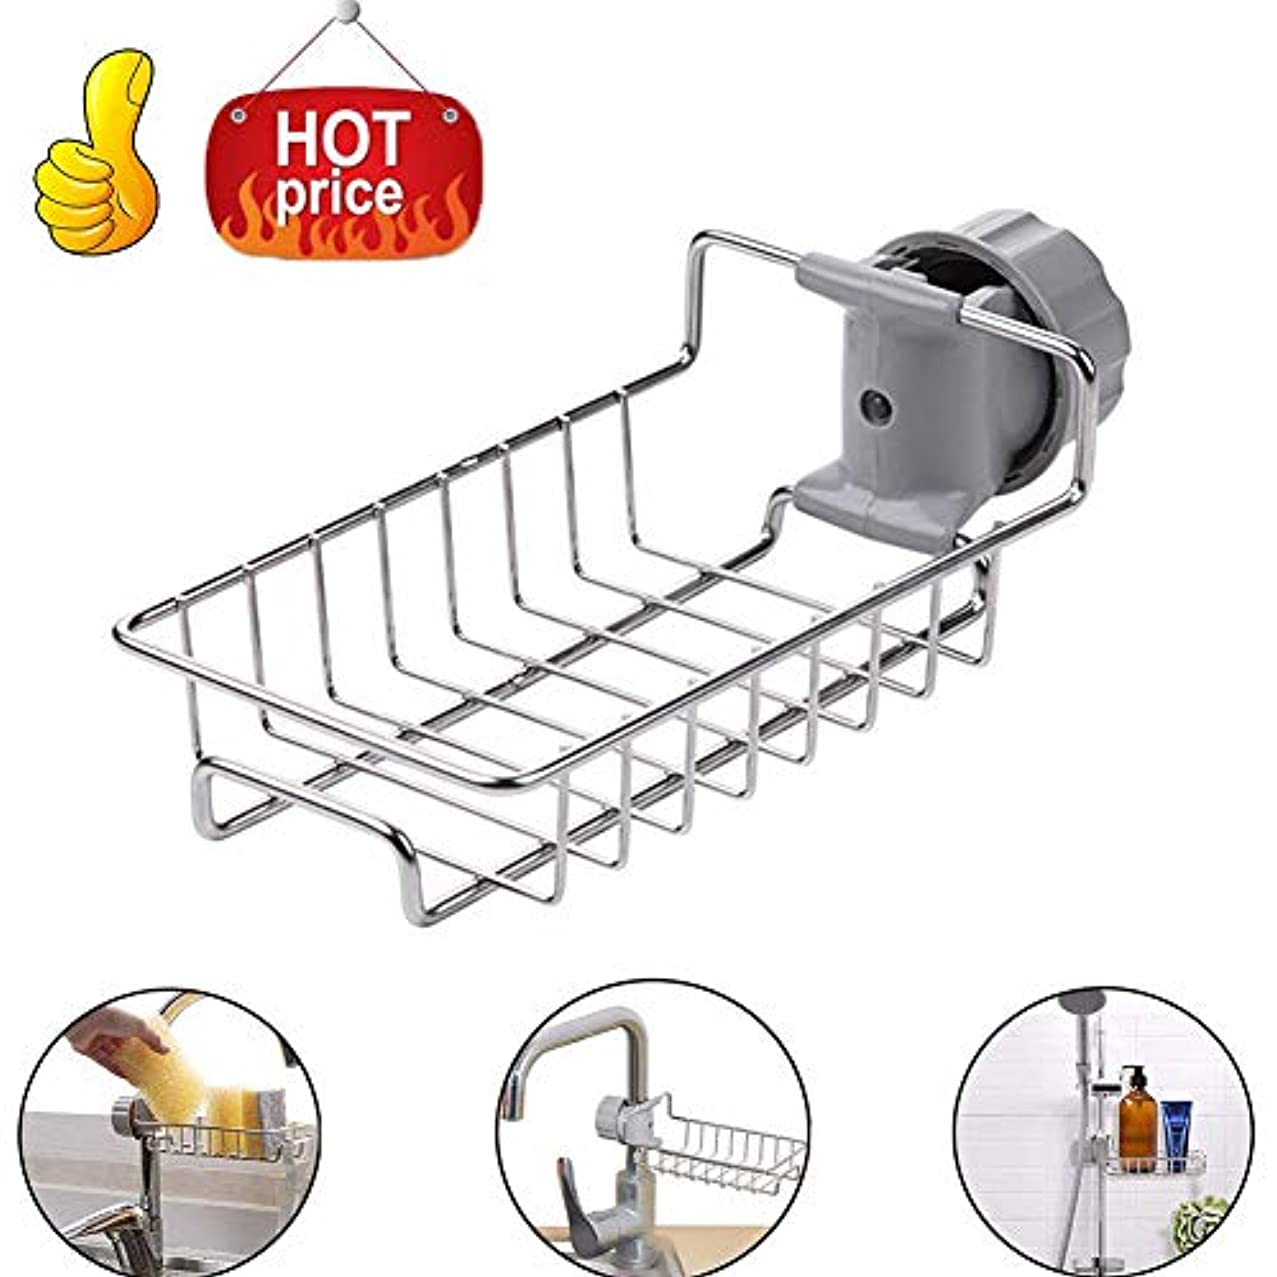 Kitchen Faucet Sink Caddy Sponge Holder, Stainless Steel Faucet Storage Rack Hanging, Shelf Soap Sponge Storage Rack, Holder Faucet Sponge Hanging - Fix Around Faucet